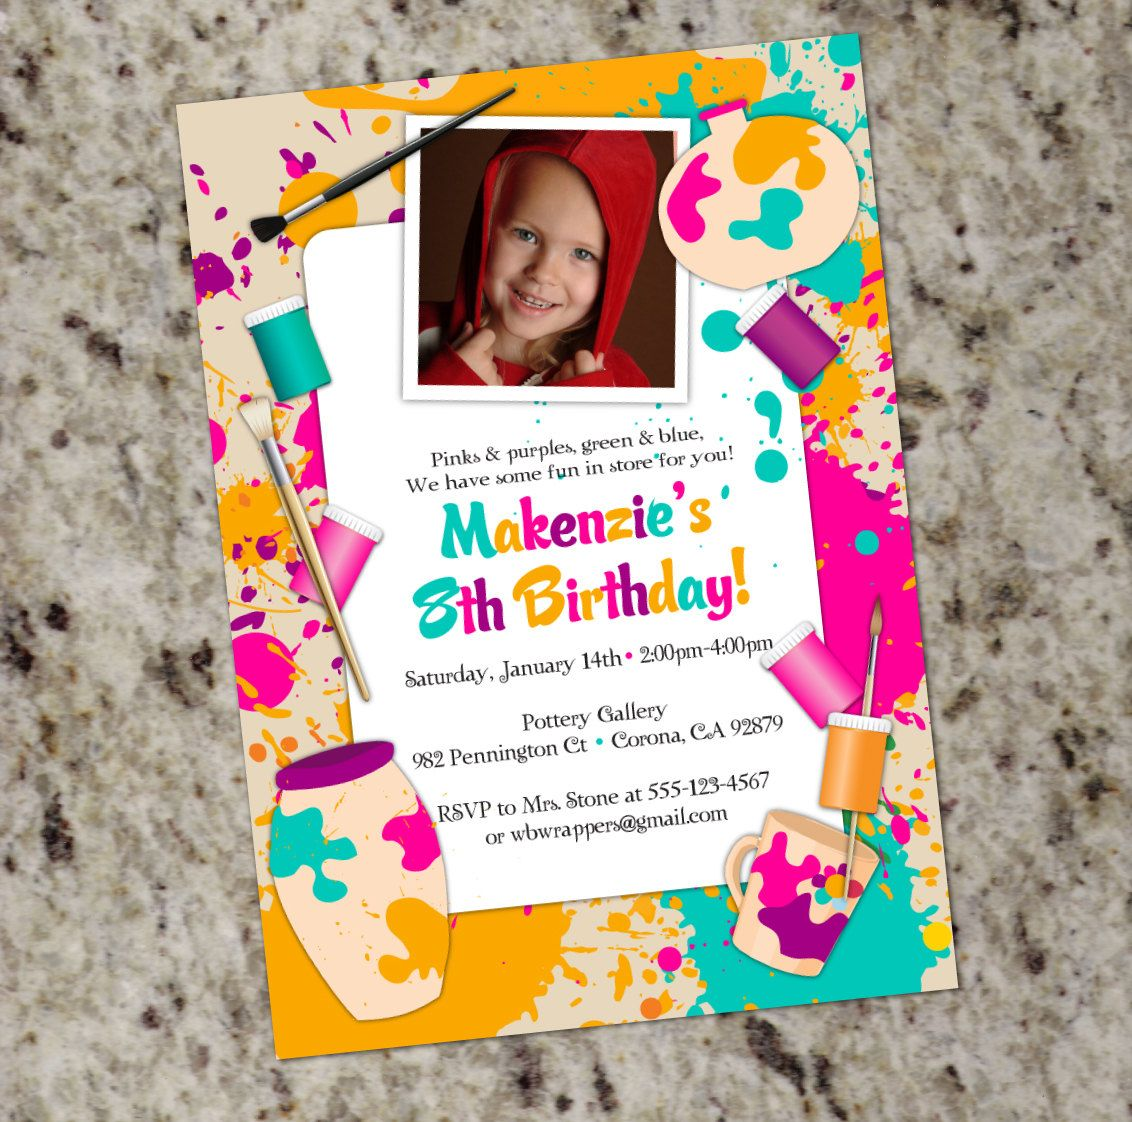 Paint Your Own Pottery Birthday Party Invitation - Printable Design ...